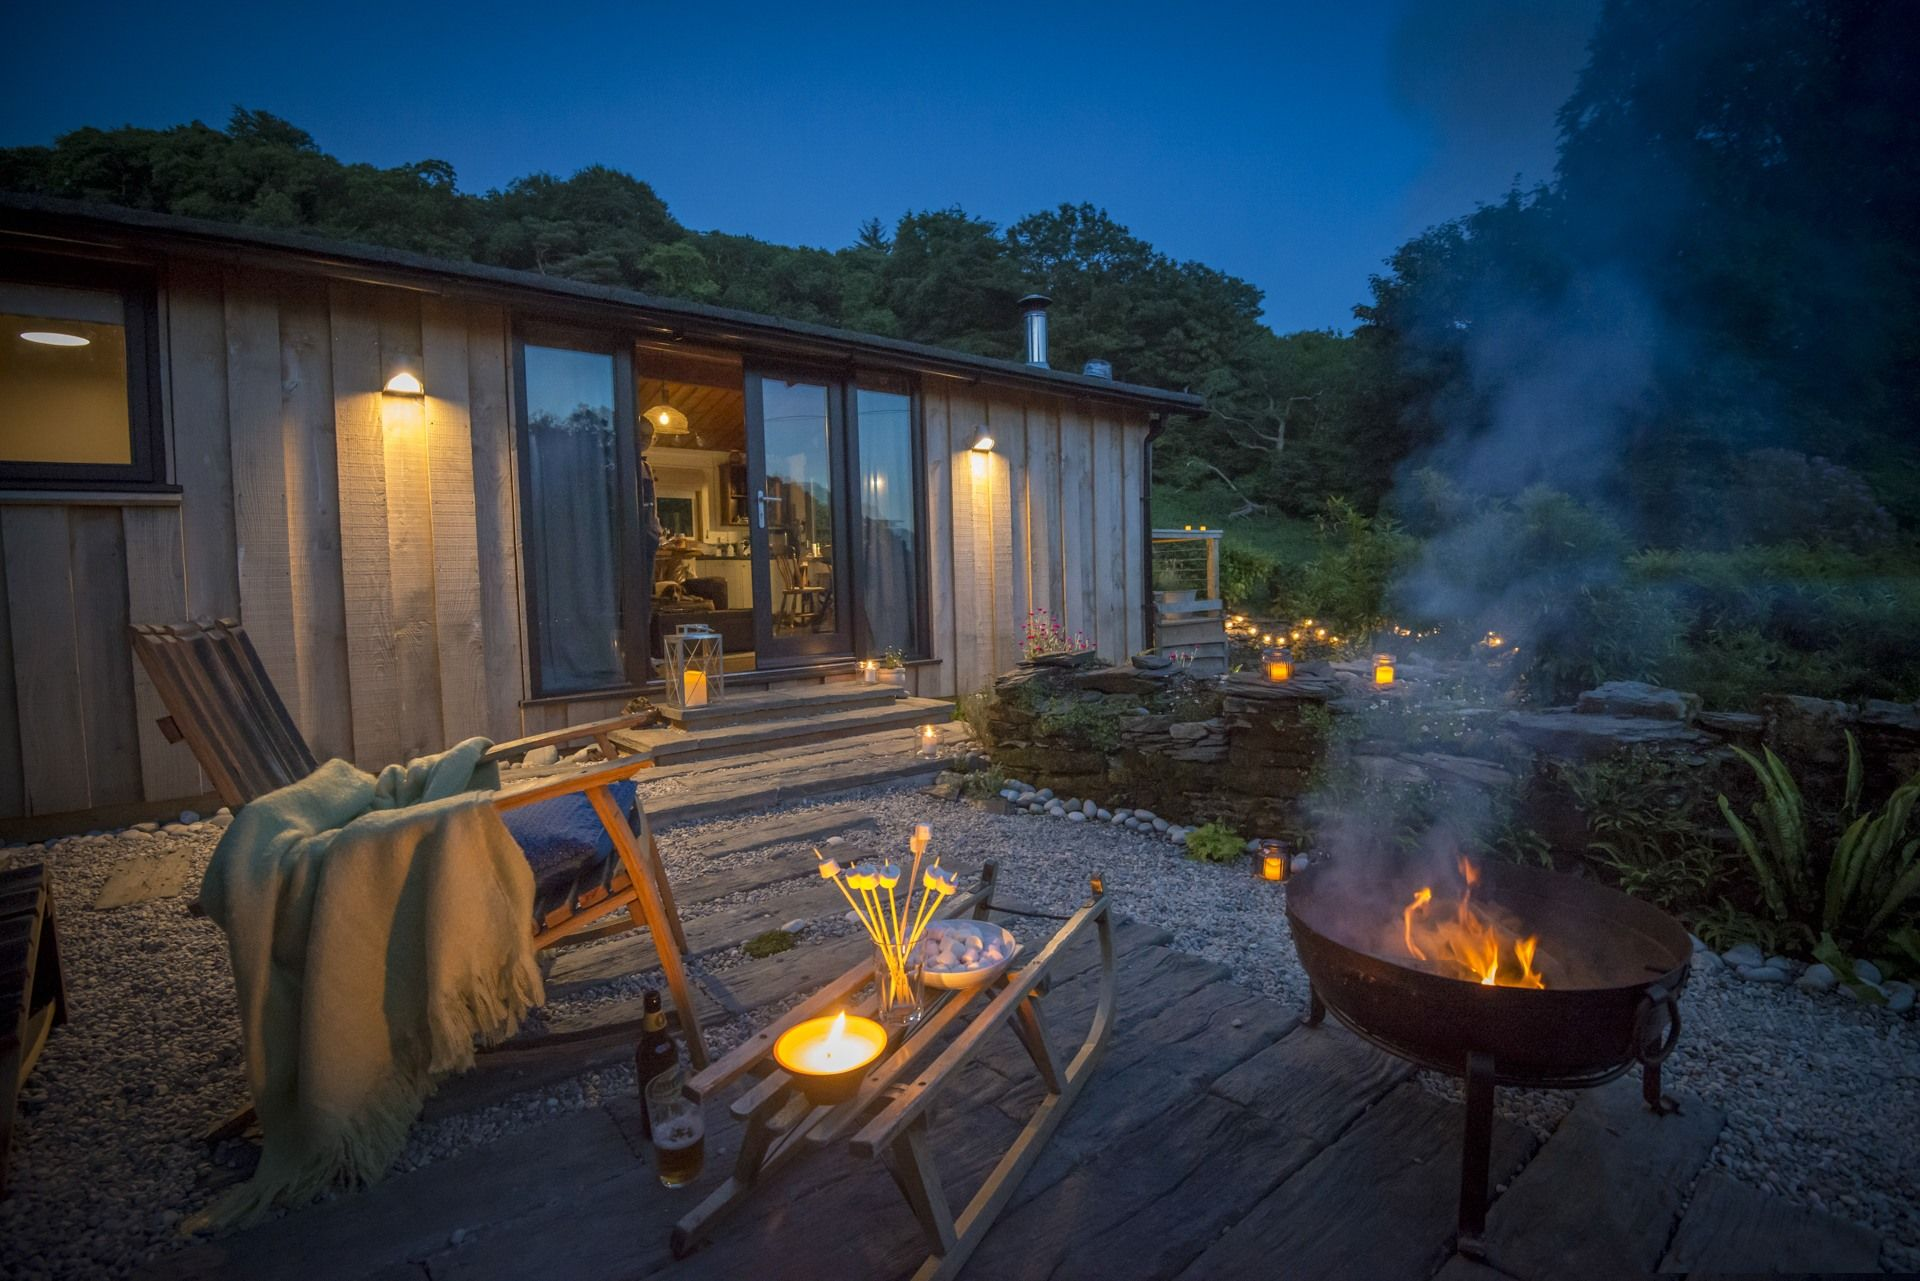 outside-little-kestrel-wood-cabin-at-night-with-fire-and-rocking-chair-in-aberdovey